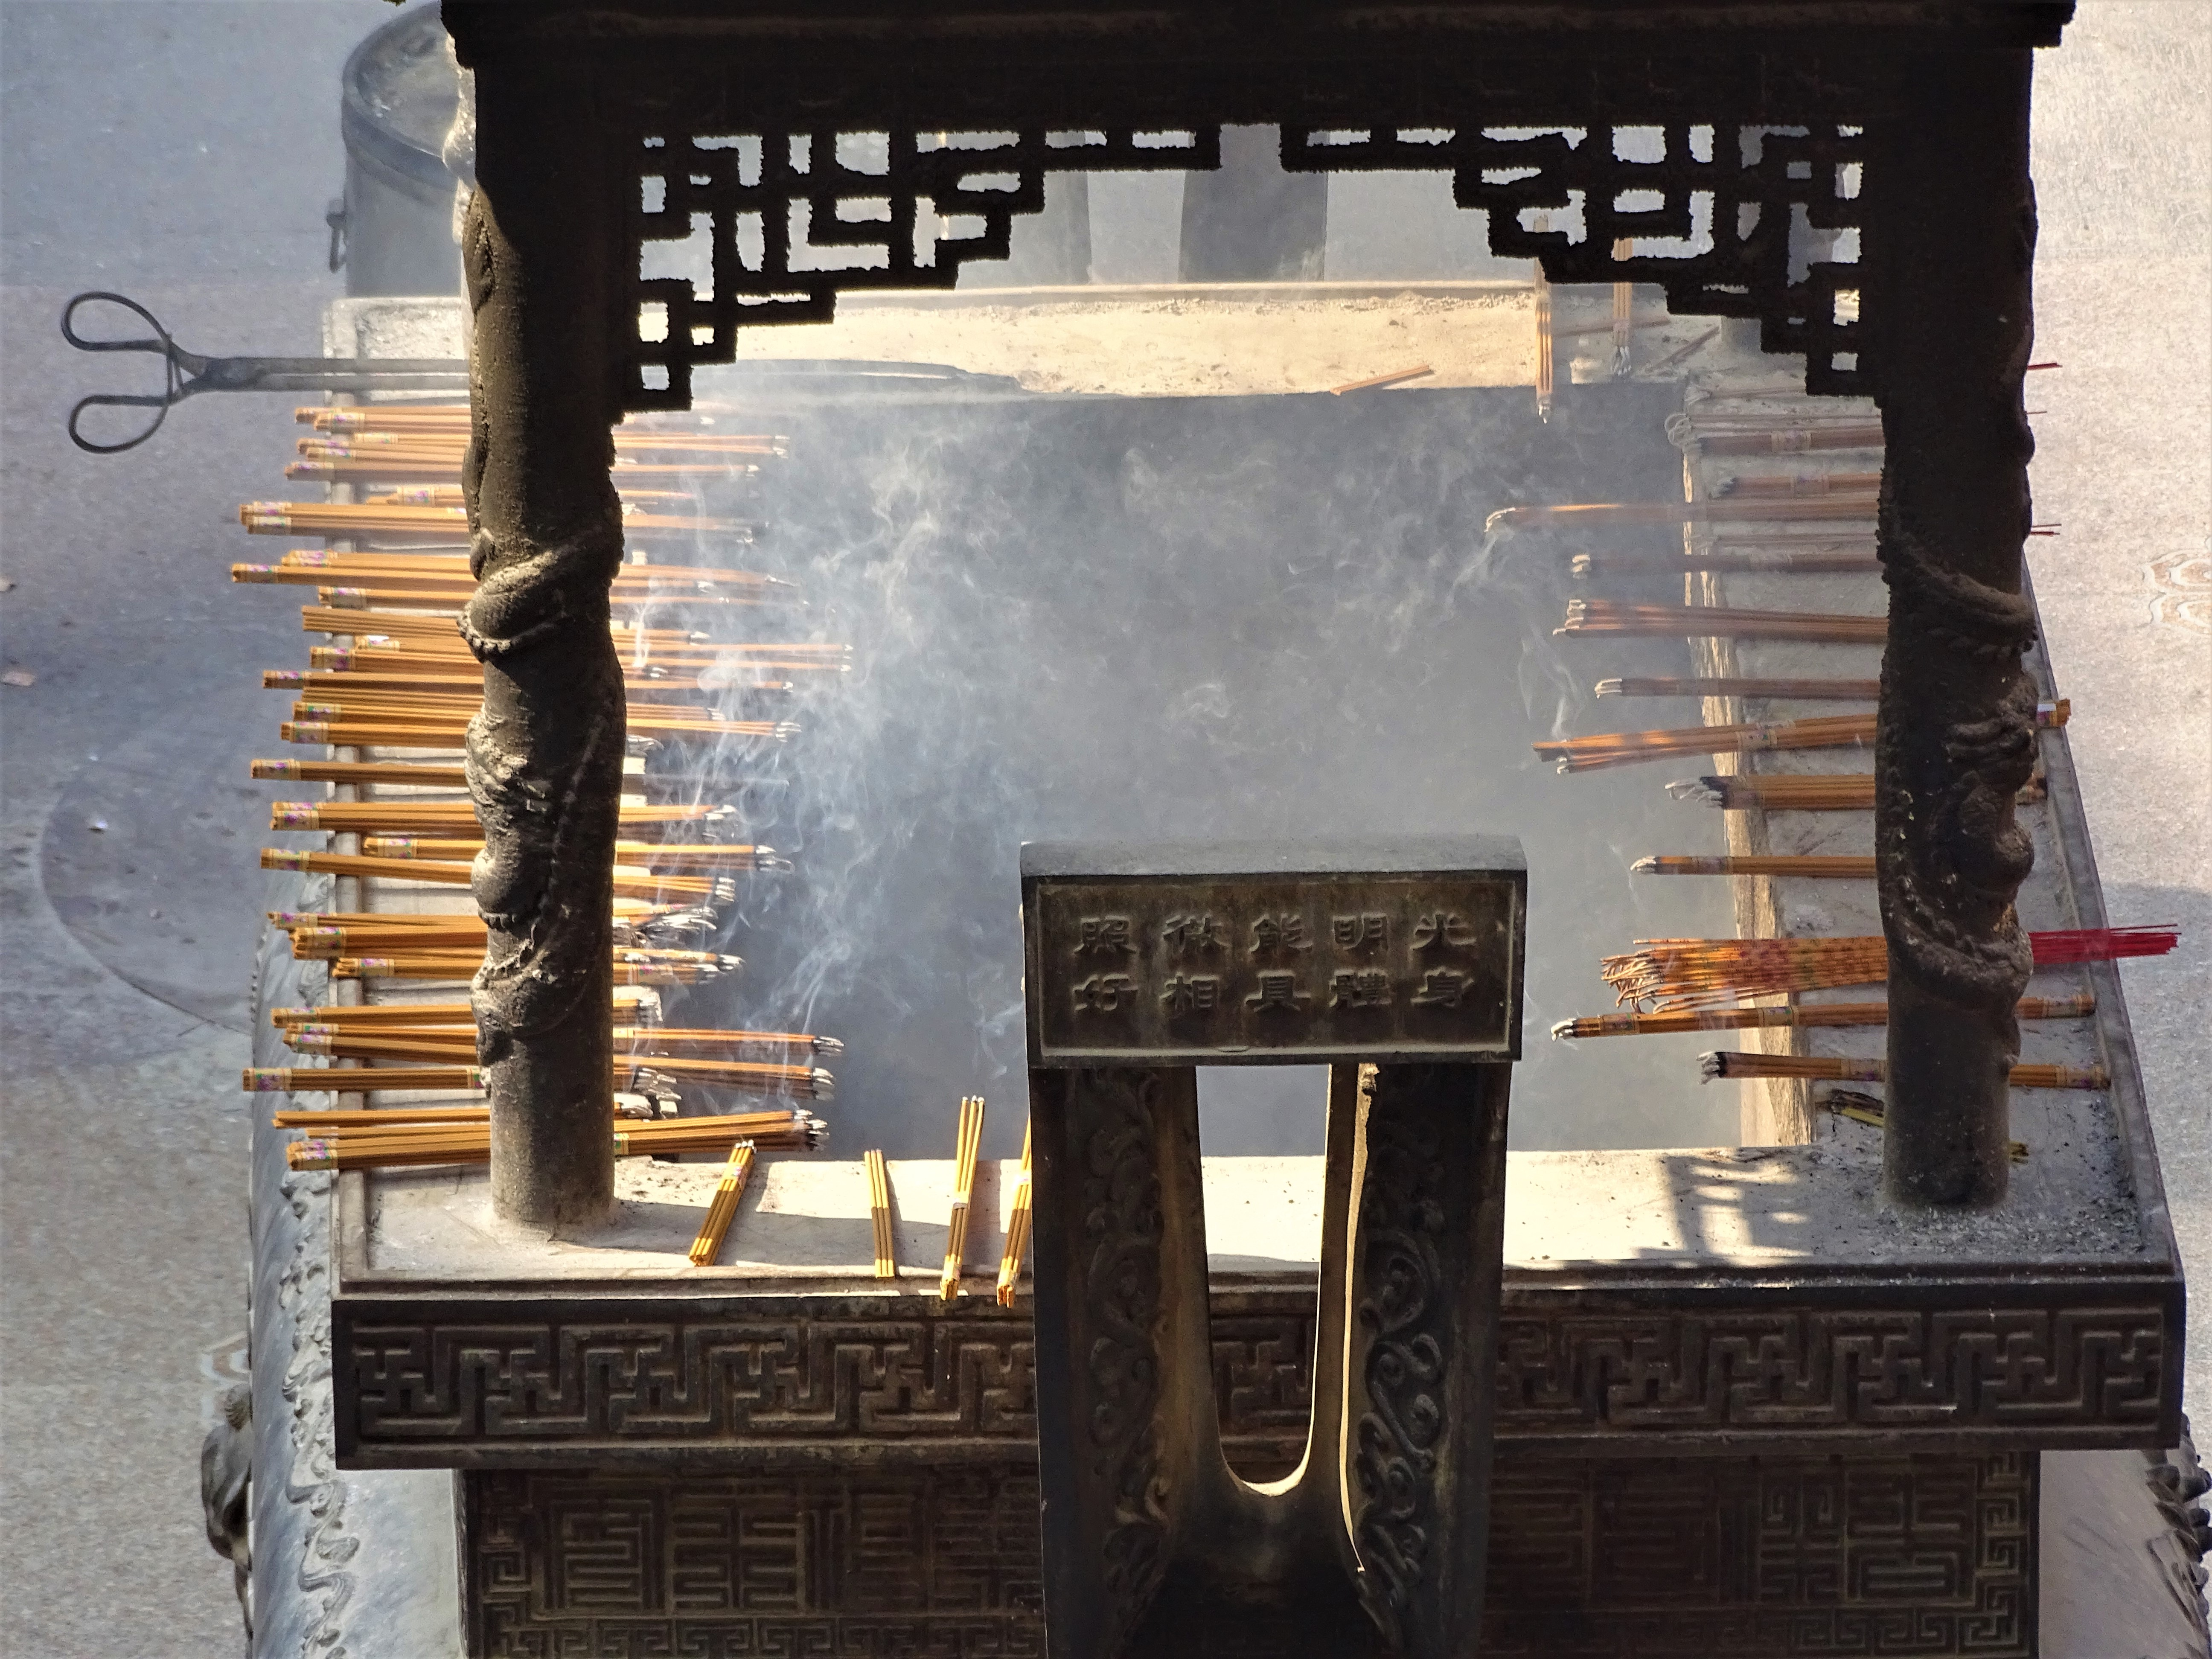 Ever wondered why people burn Incense at Temples in China